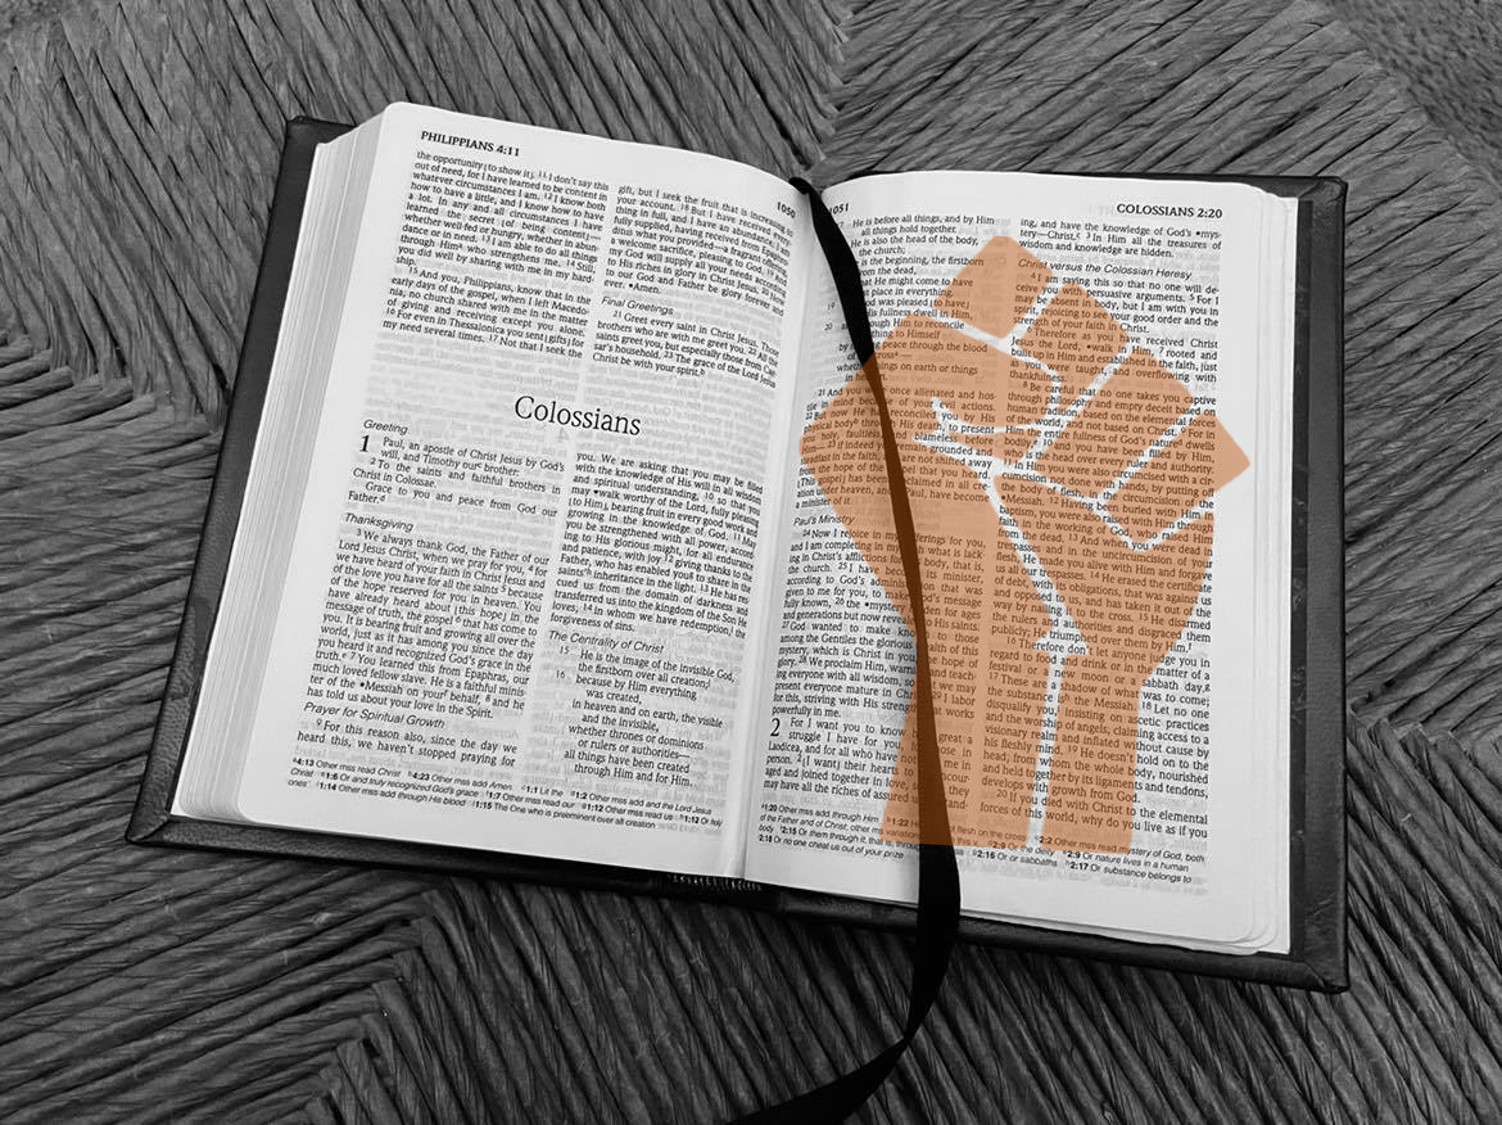 Holy Bible and Marxist Fist